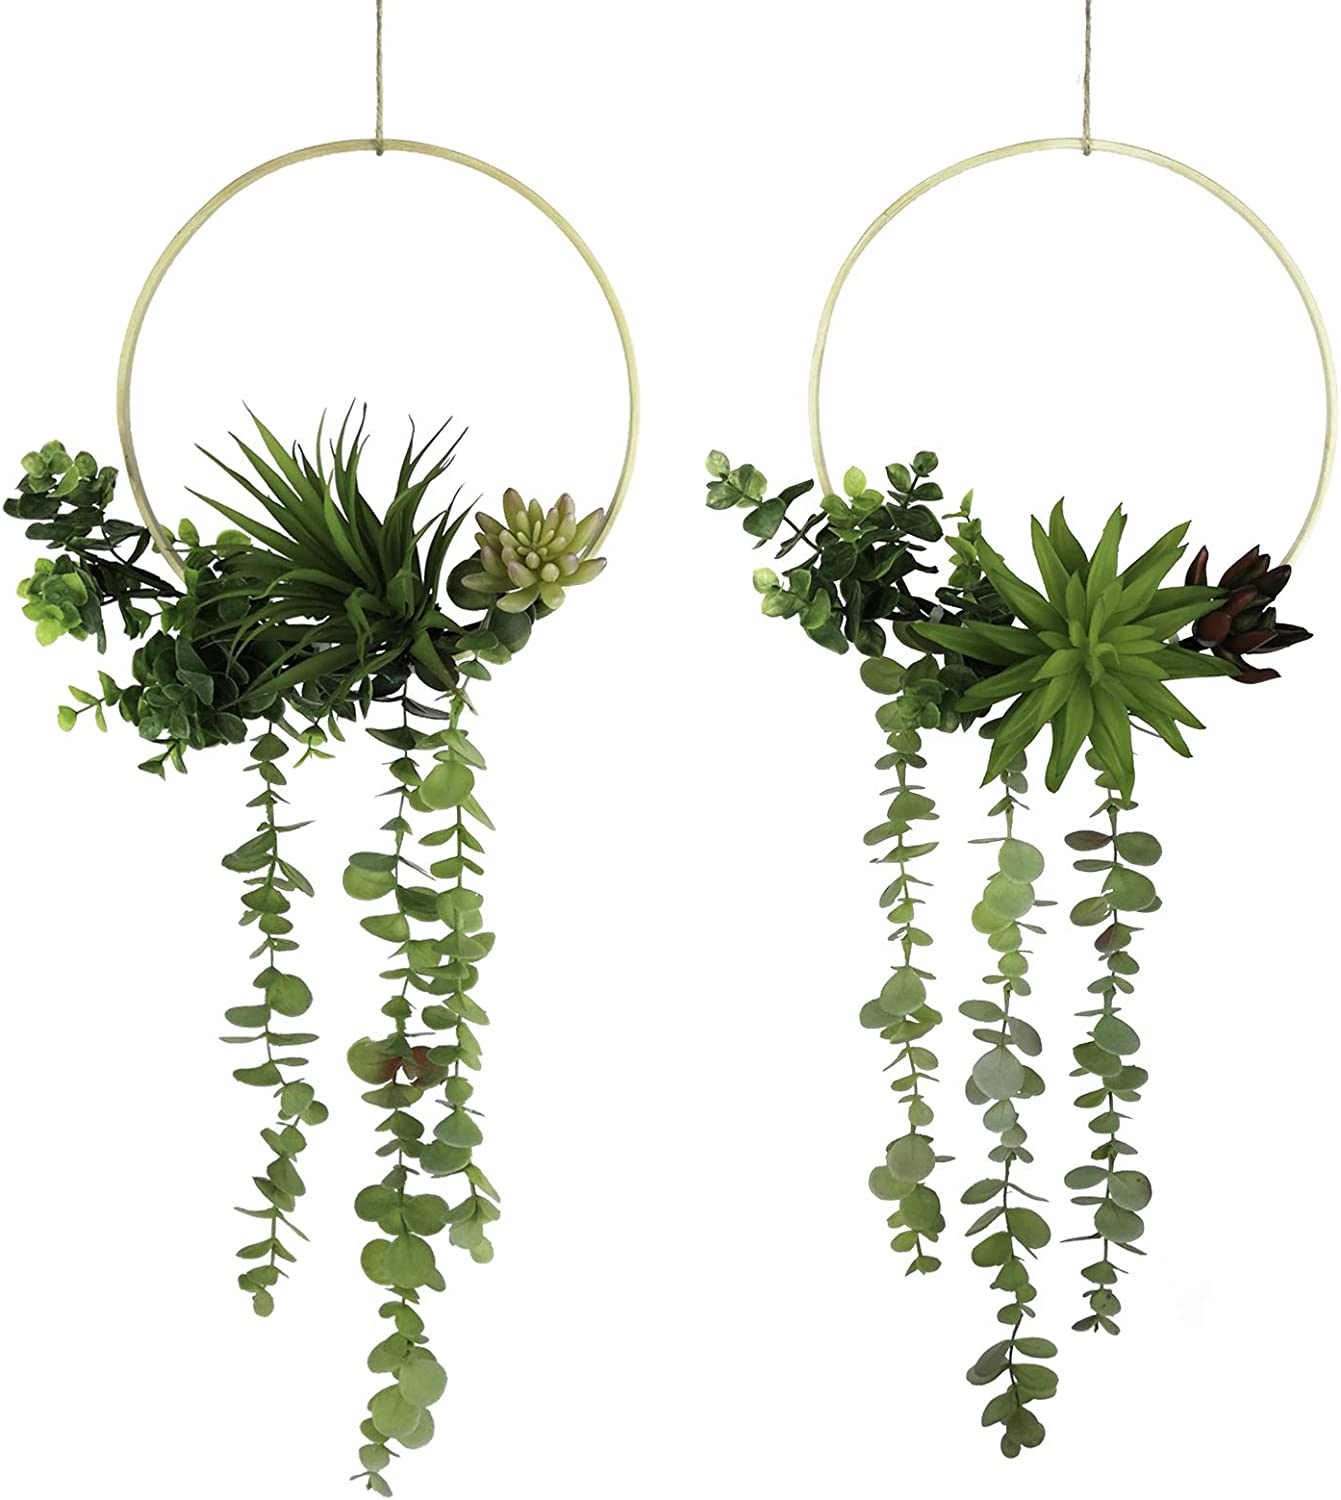 Tuokorgreen Set of 2 Artificial Succulent Hanging Plants Decor Wedding Wreath with Drooping Leaves Bamboo Floral Hoop Garland for Backdrop Nursery Wall Decoration